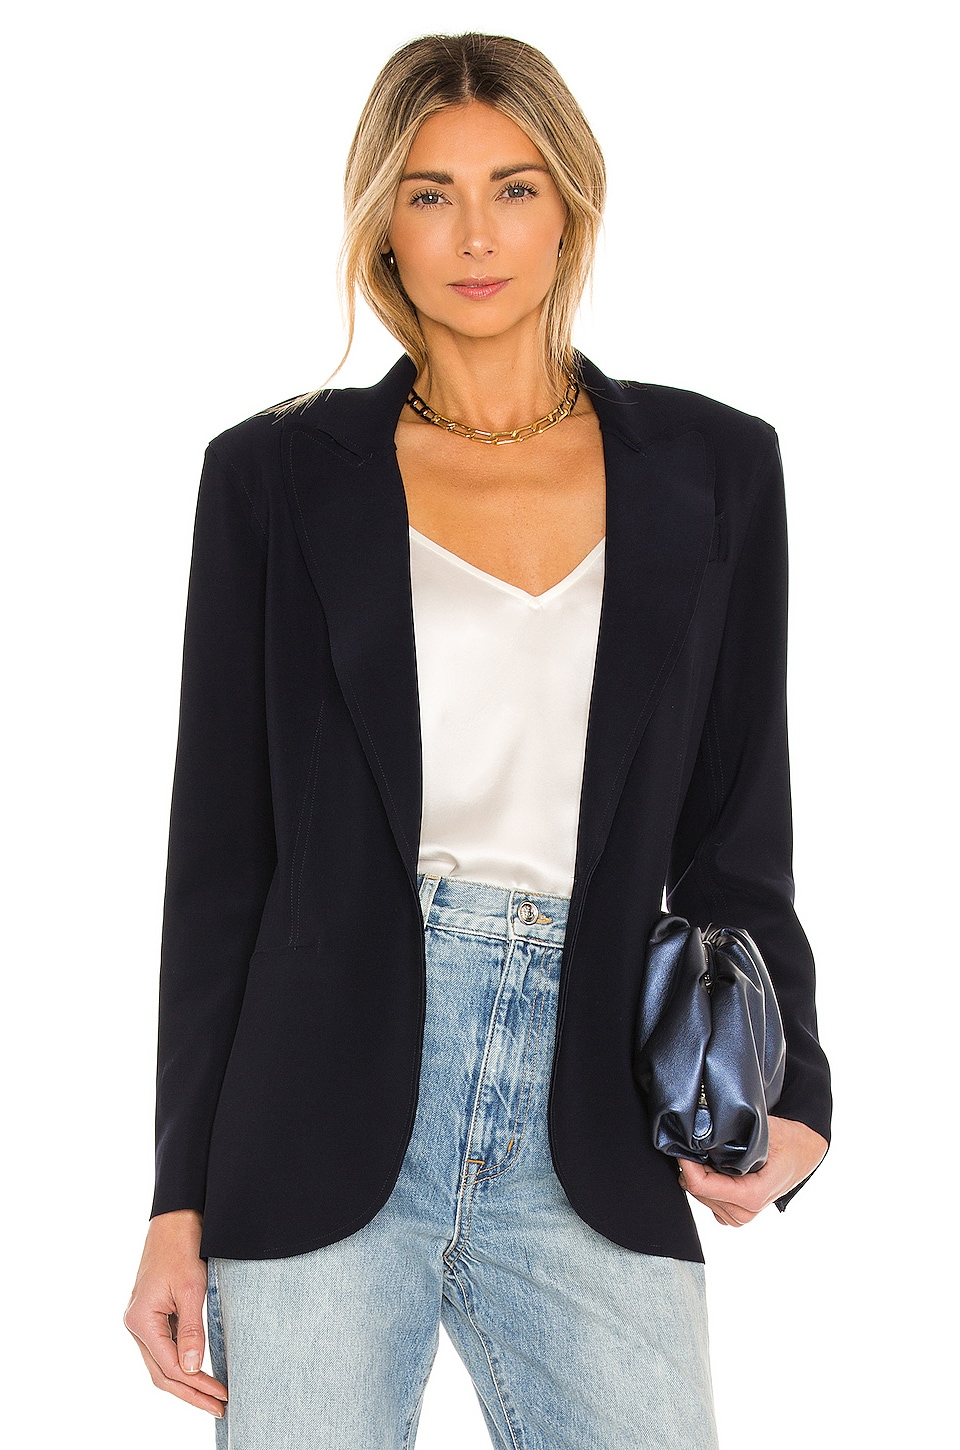 Norma Kamali Single Breasted Jacket in Midnight